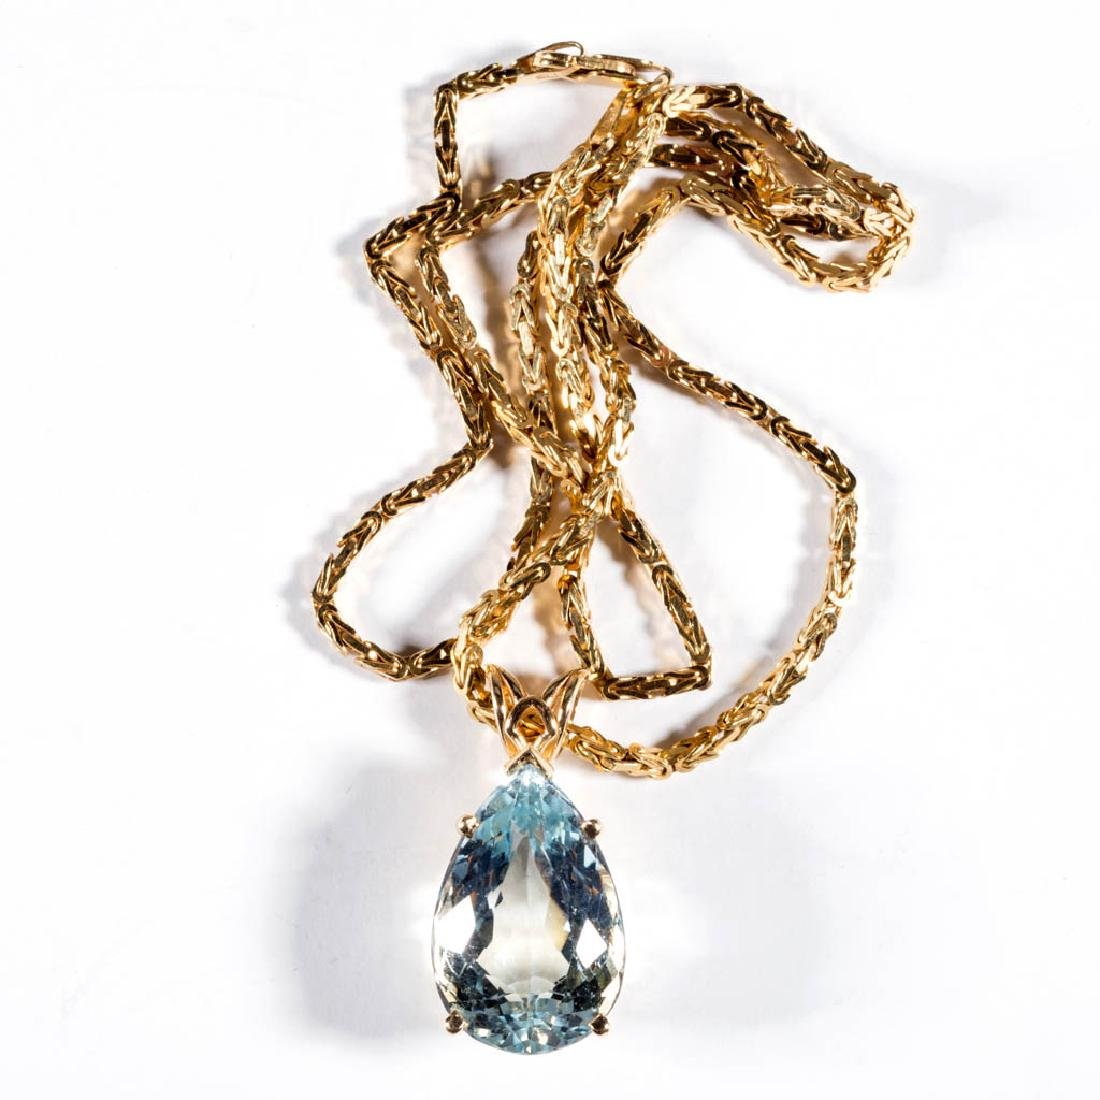 14K GOLD AND TOPAZ NECKLACE